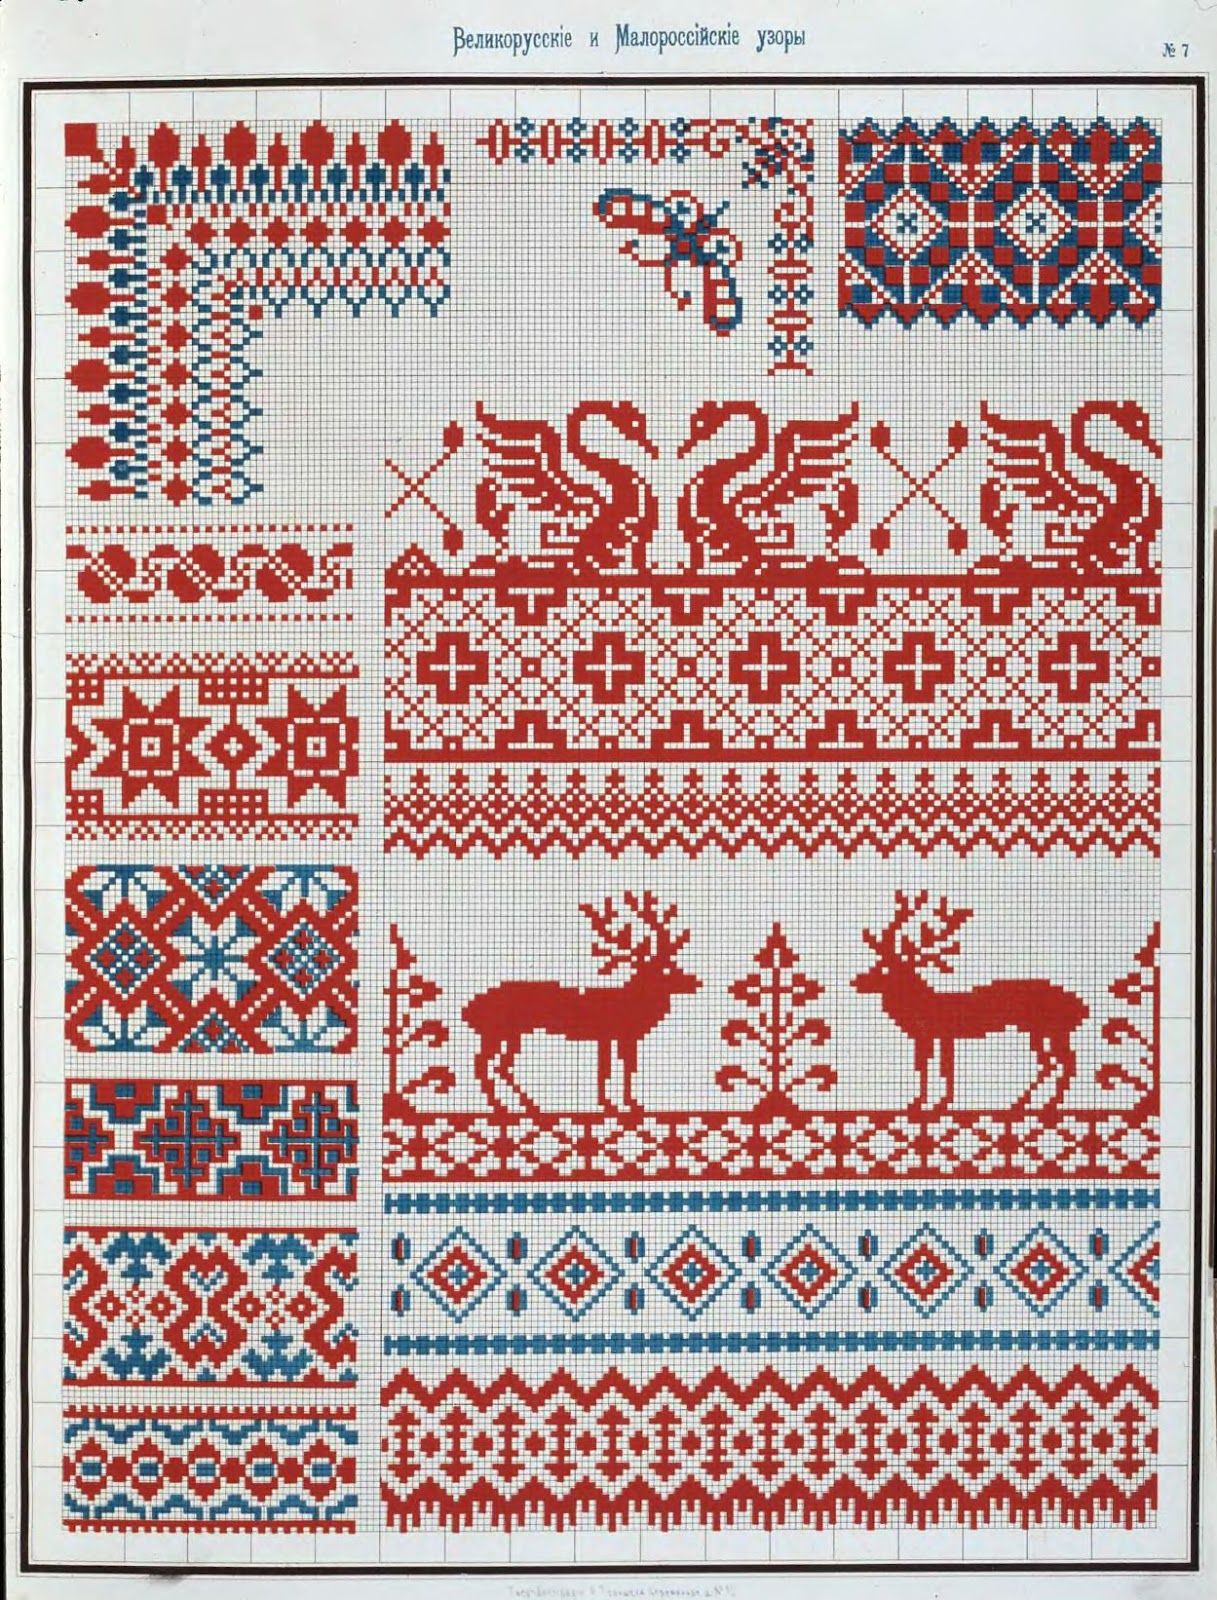 1877 Ornament Russkoj Narodnoj Vyshivki Kak Istoriko Etnograficheskij Istochnik Collected Velikorusskih Malorossiyskih Patterns For Embroidery Cross Stitch Border Pattern Cross Stitch Flowers Cross Stitch Embroidery